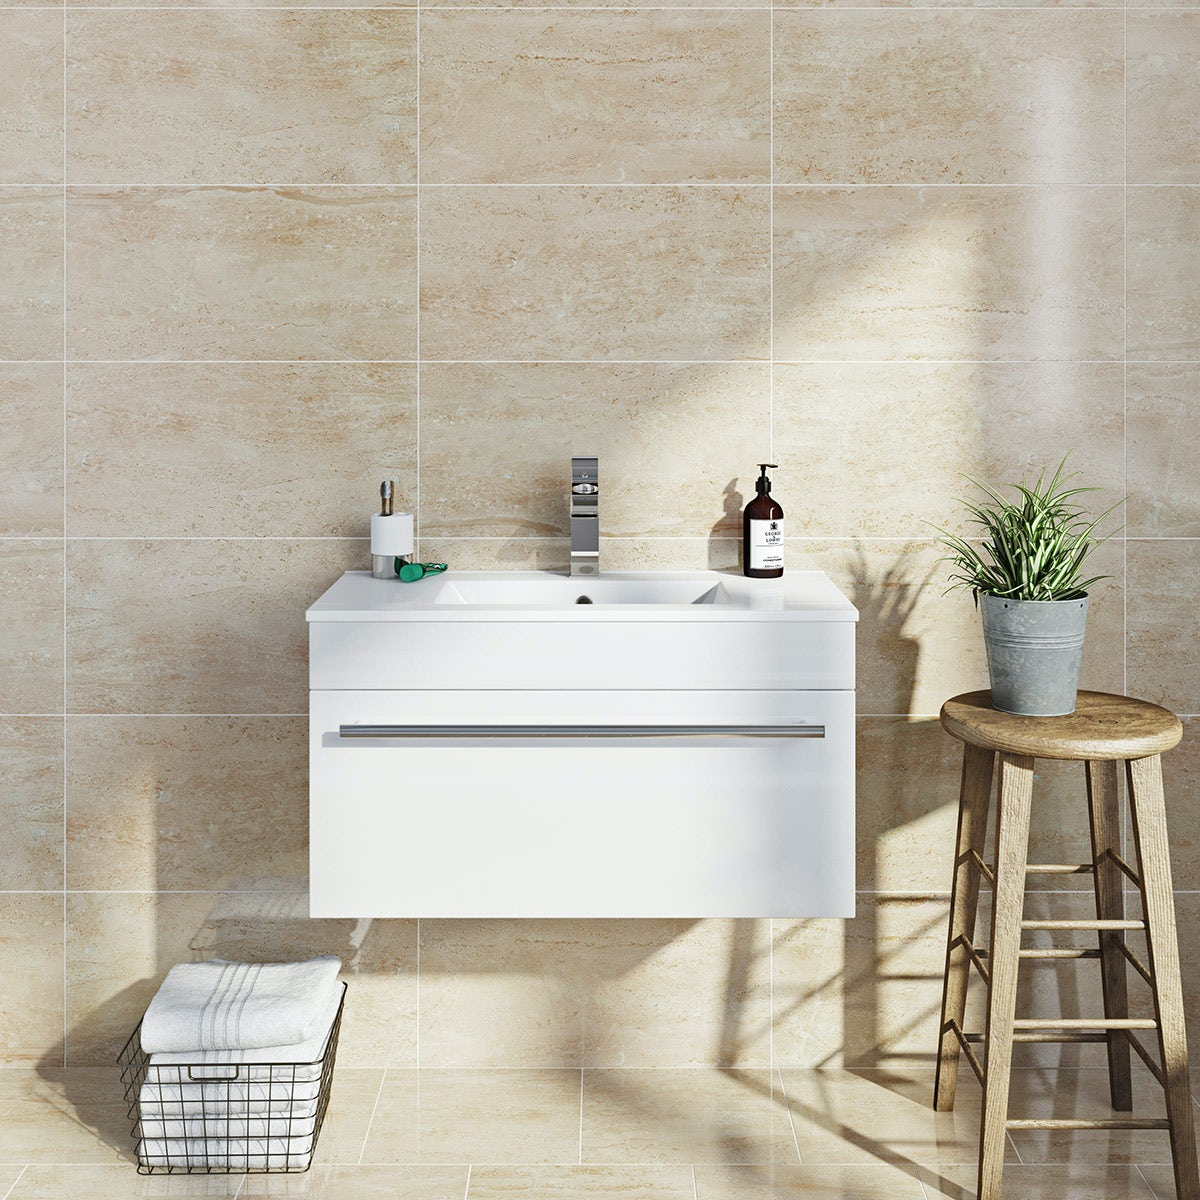 British Ceramic Tile Lux beige gloss tile 298mm x 598mm - Sold by Victoria Plum